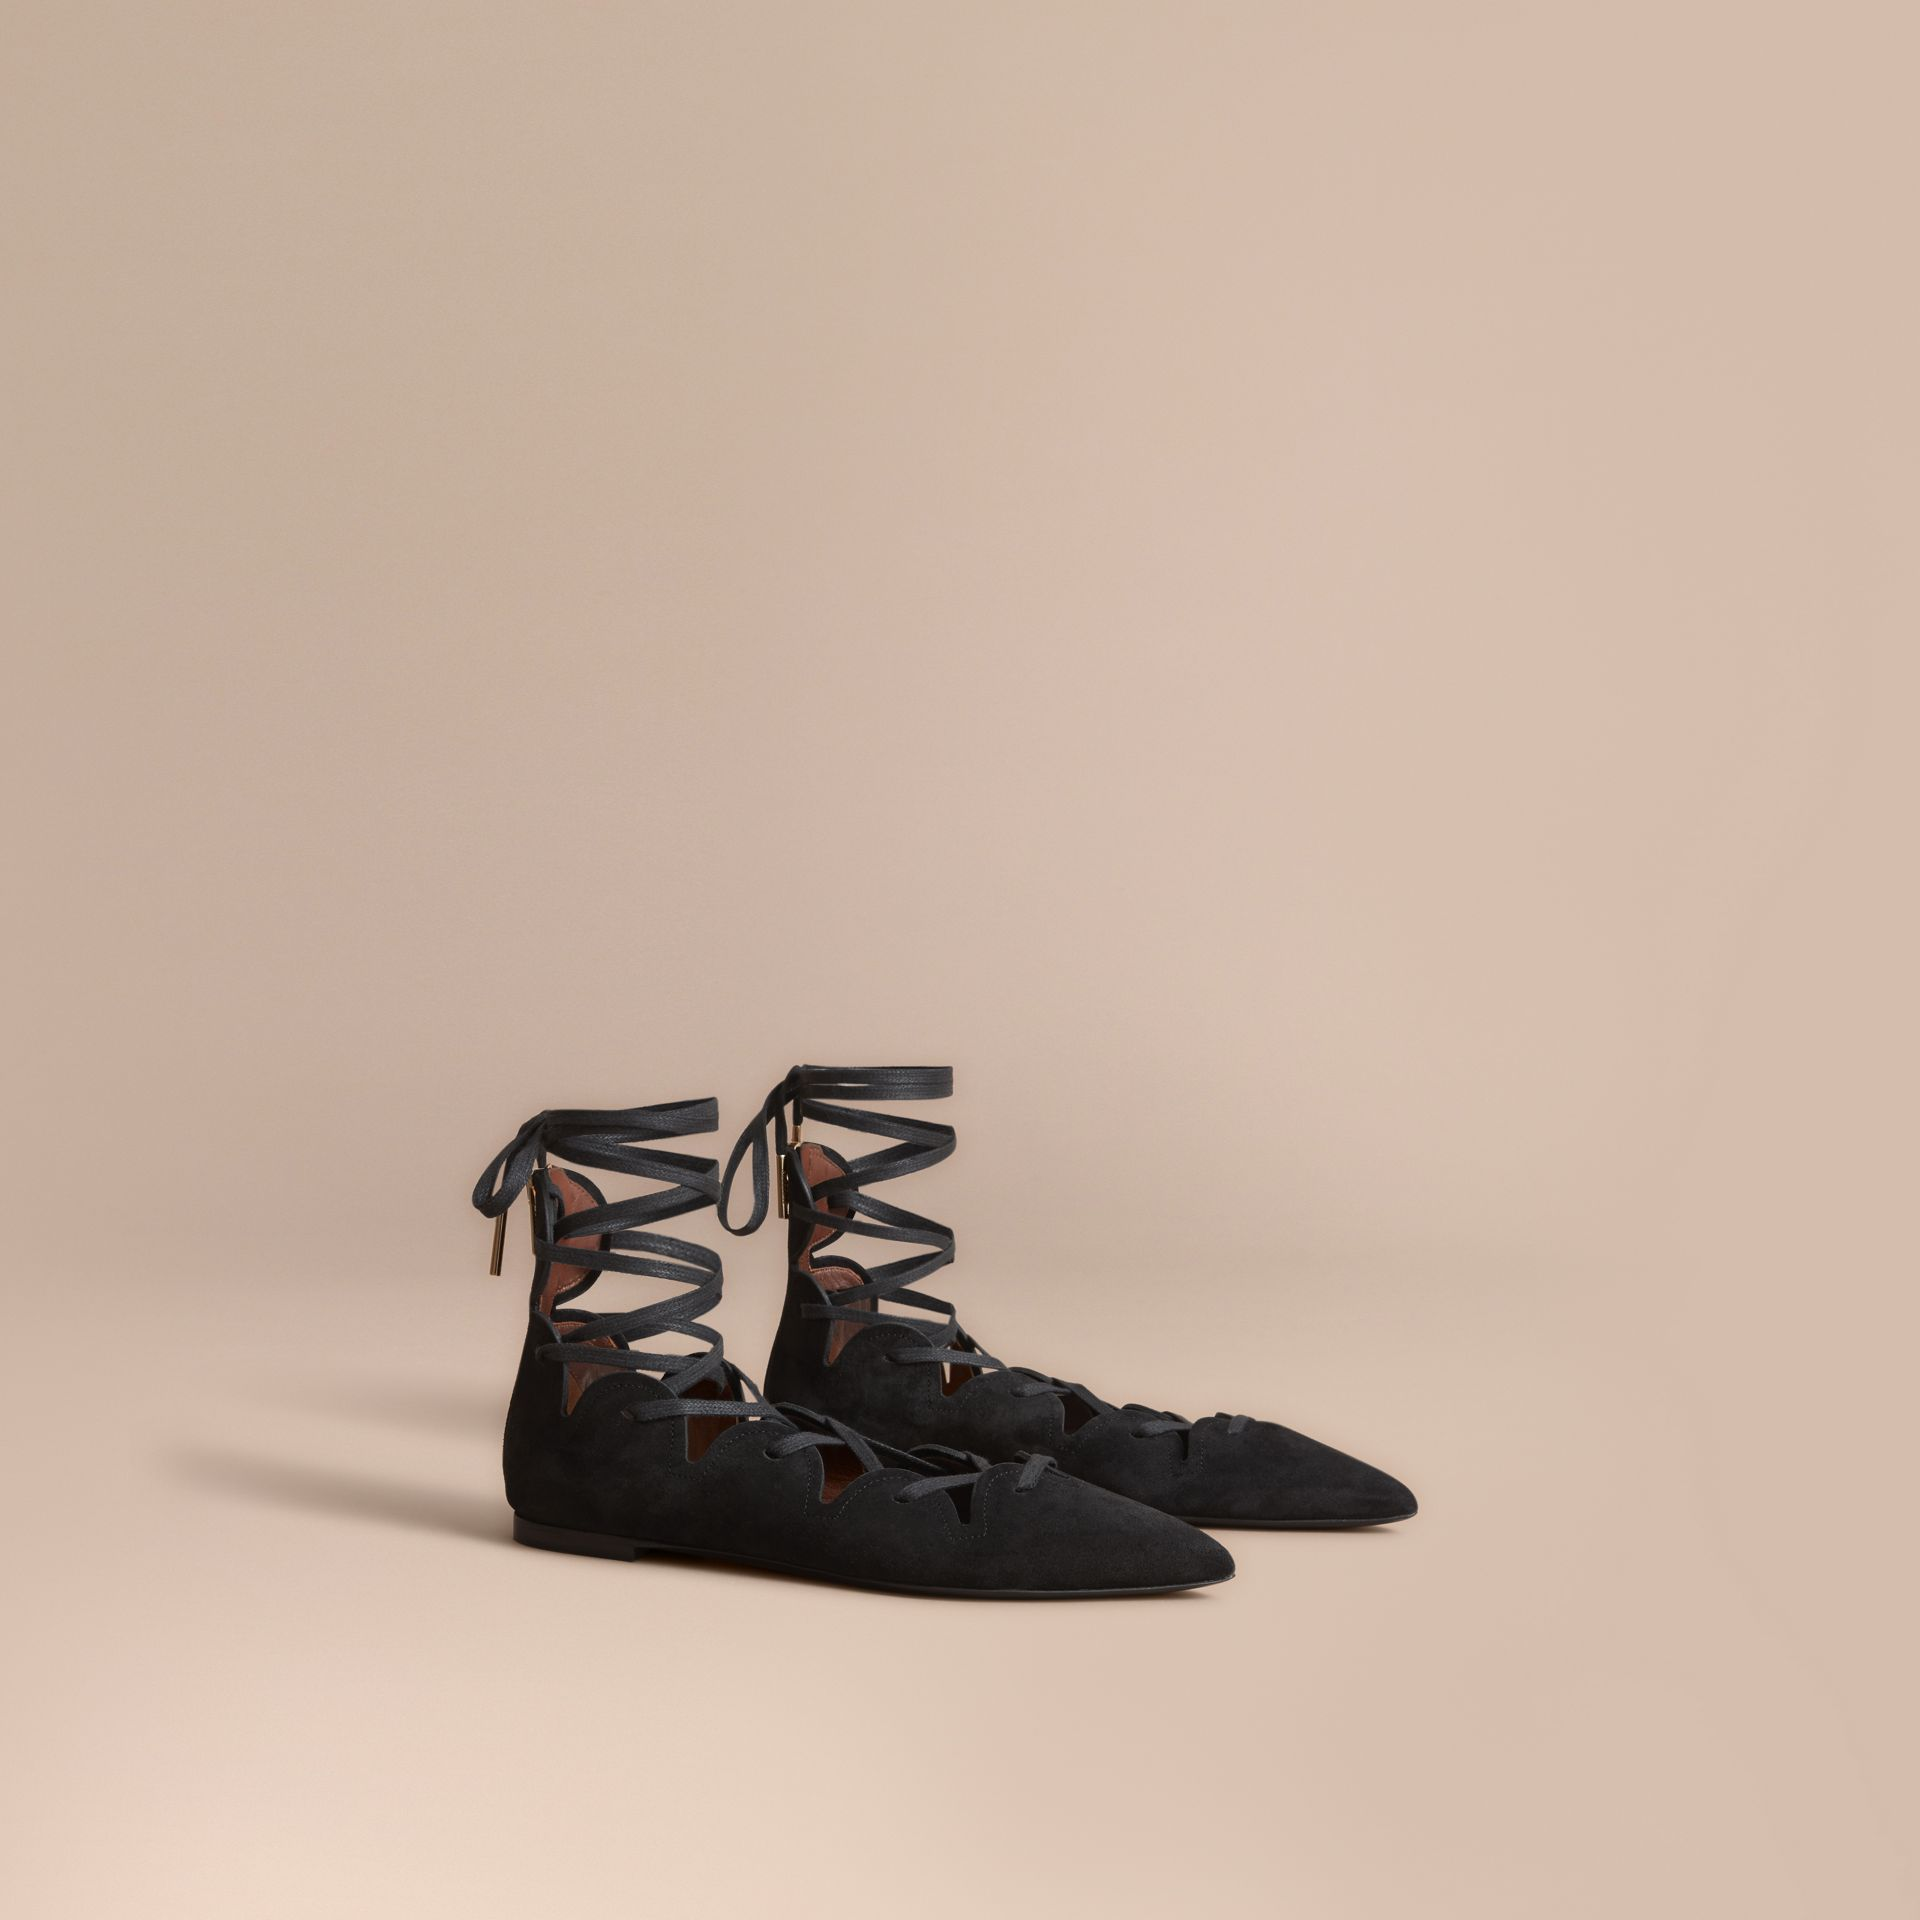 Scalloped Suede Lace-up Ballerinas in Black - Women | Burberry Singapore - gallery image 1